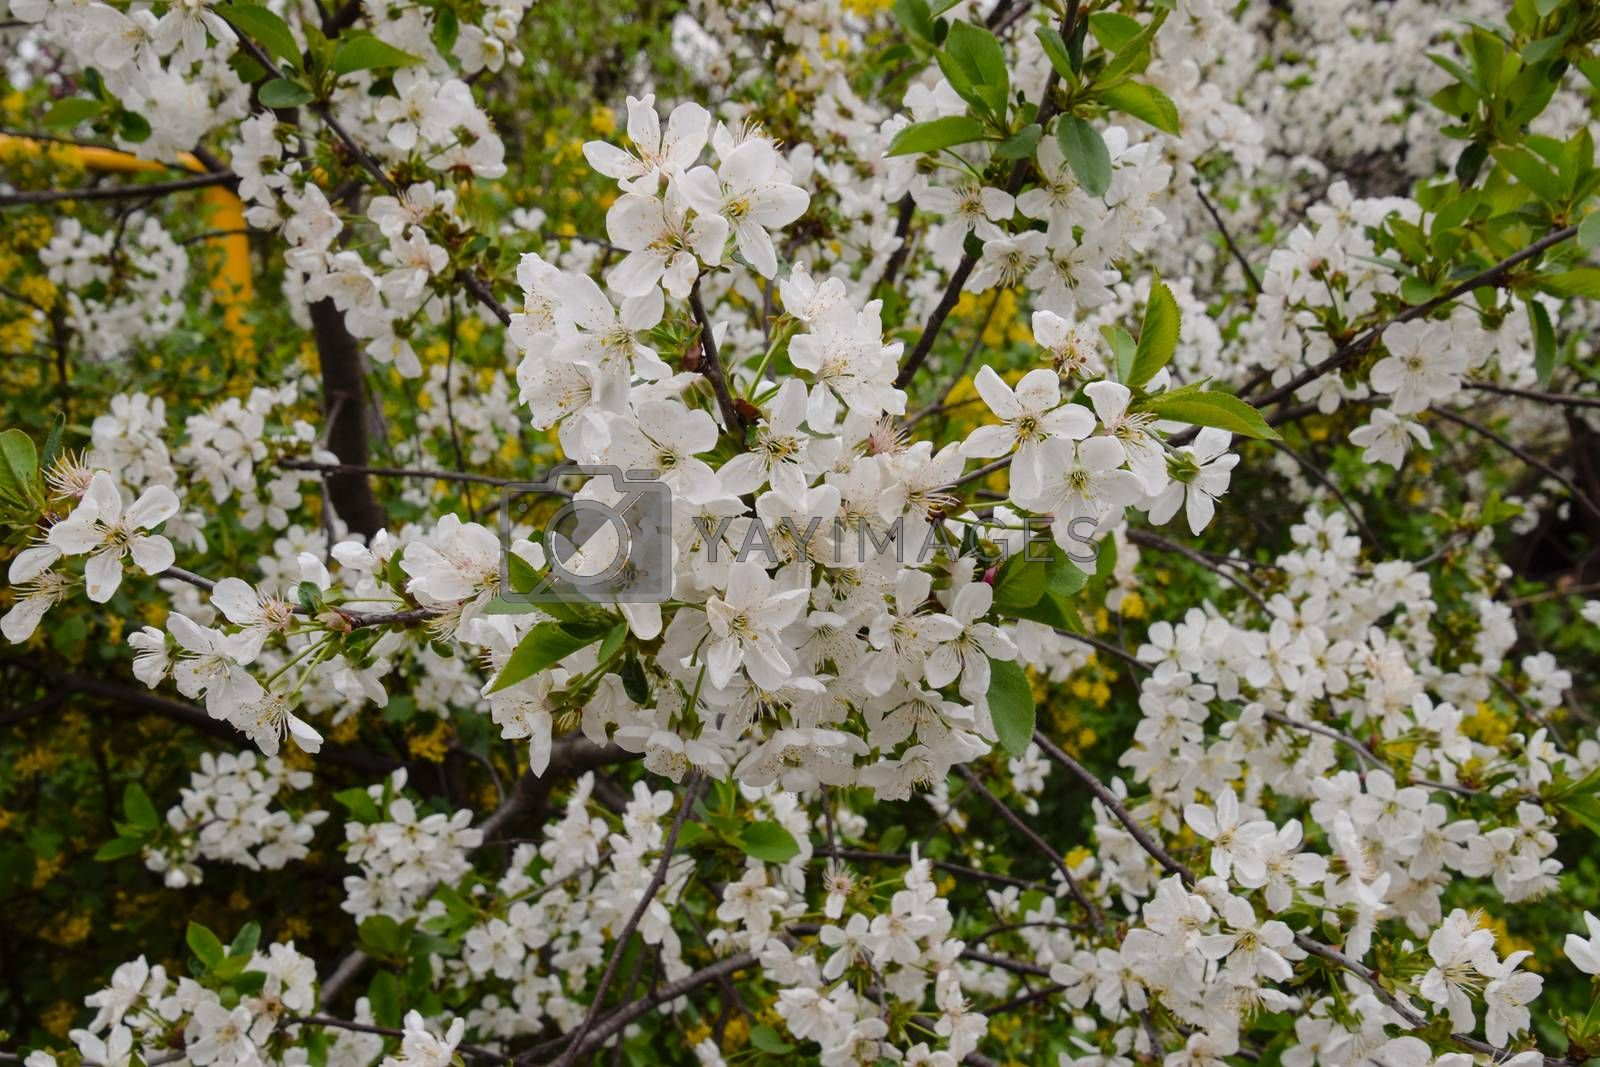 Cherry blossoms in the garden. White flowers on a tree